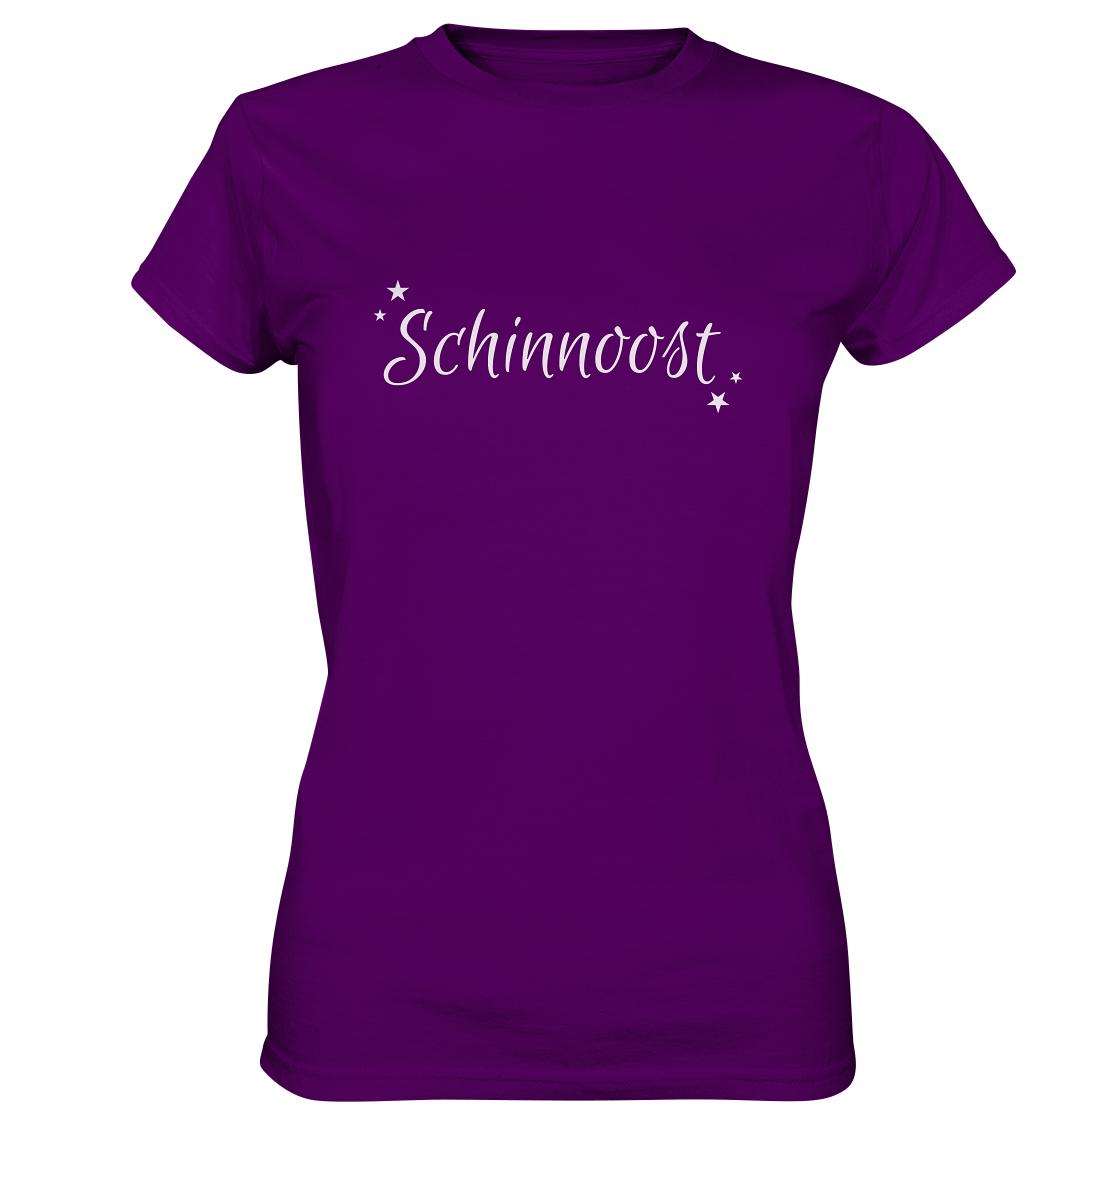 Schinnoost -  Ladies Premium Shirt